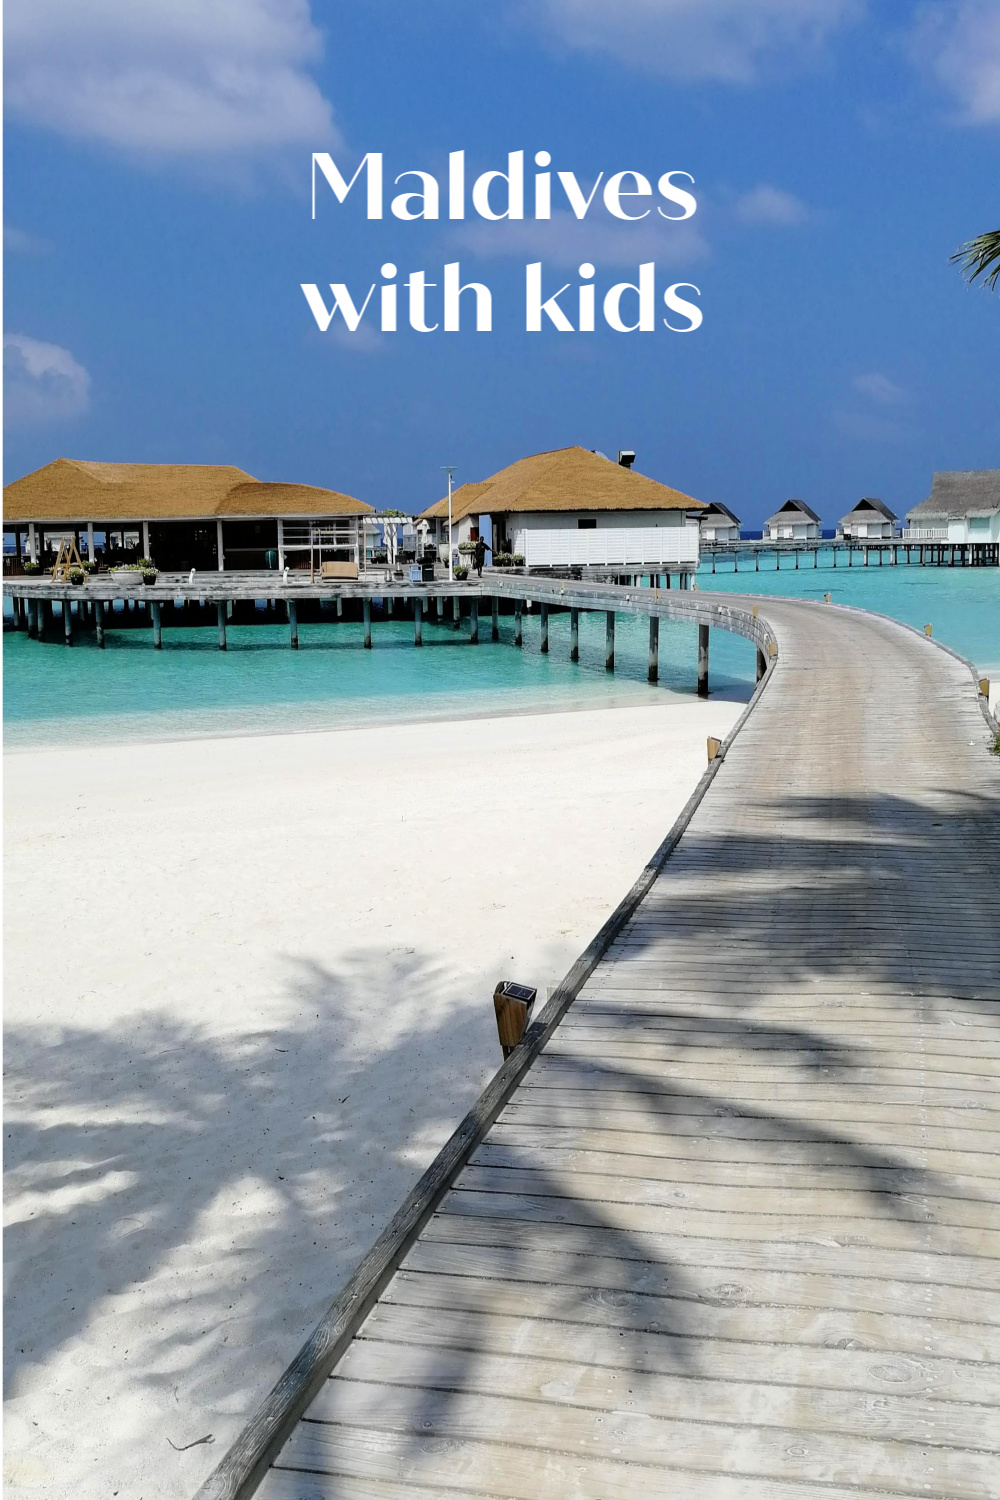 Maldives with Kids